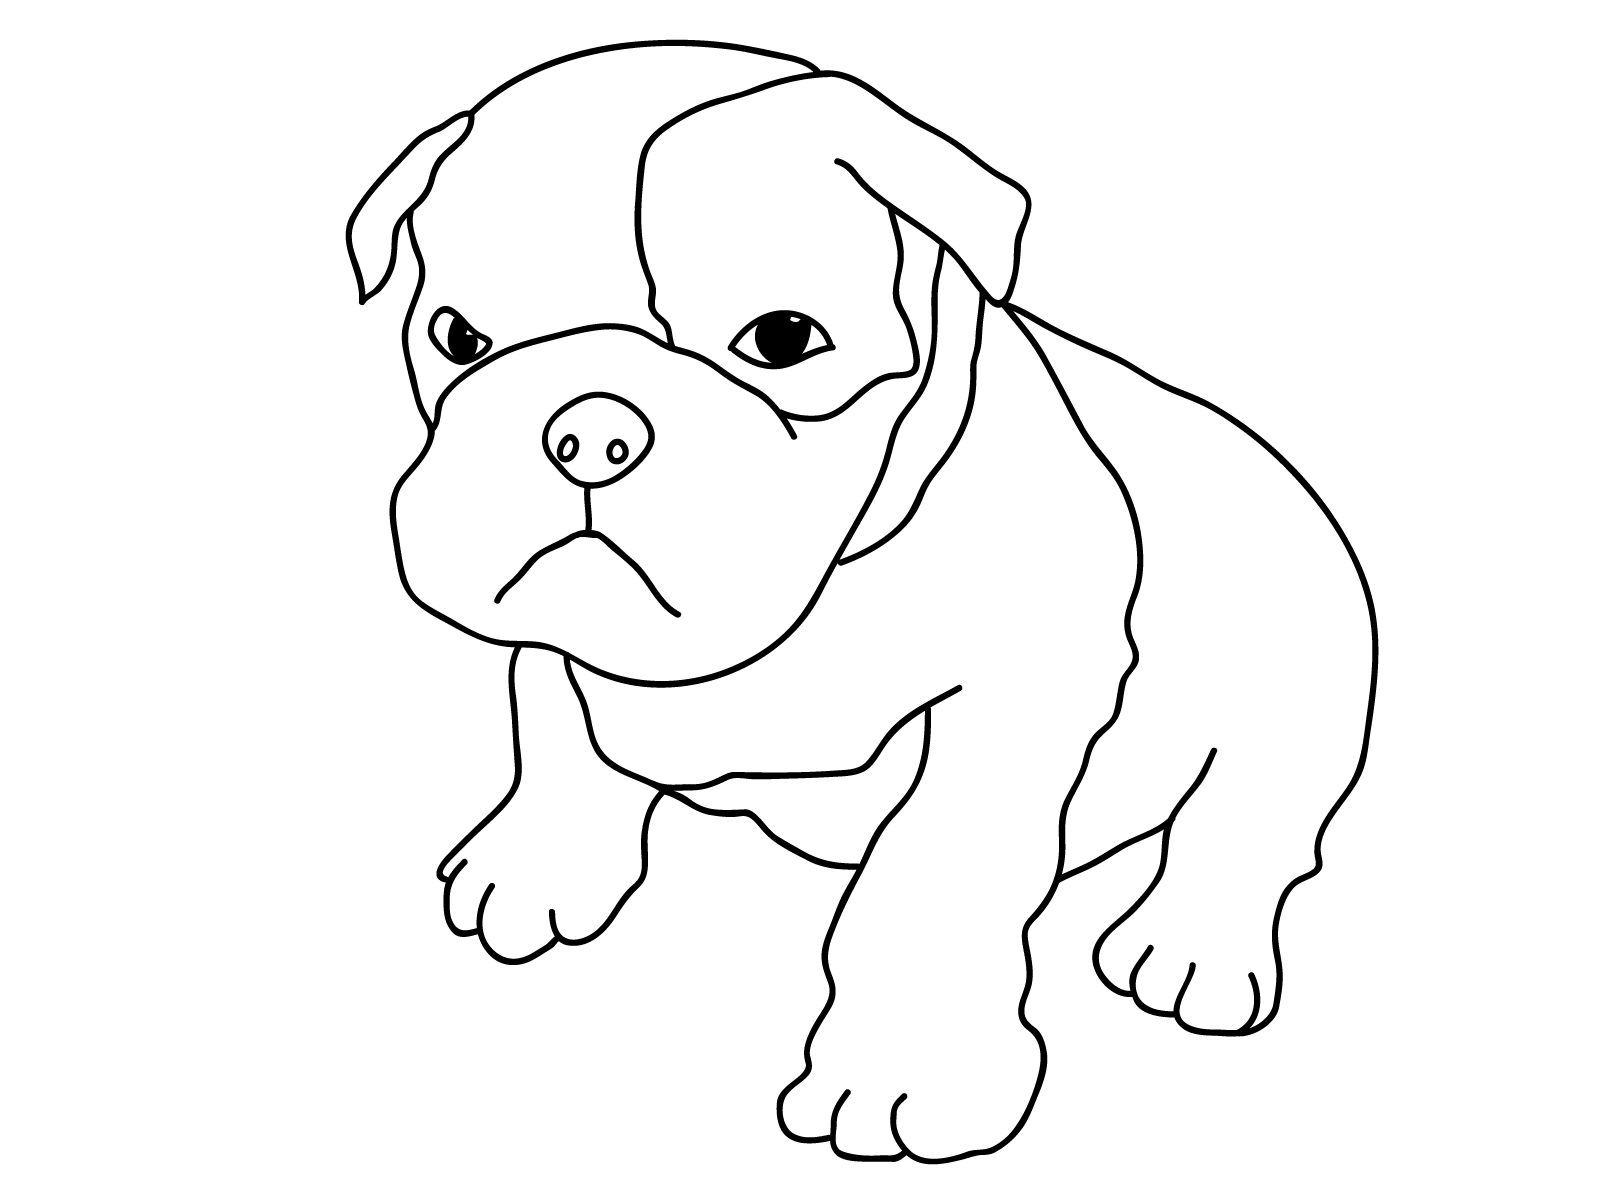 free online dog coloring pages cute dog coloring pages to download and print for free online coloring free dog pages